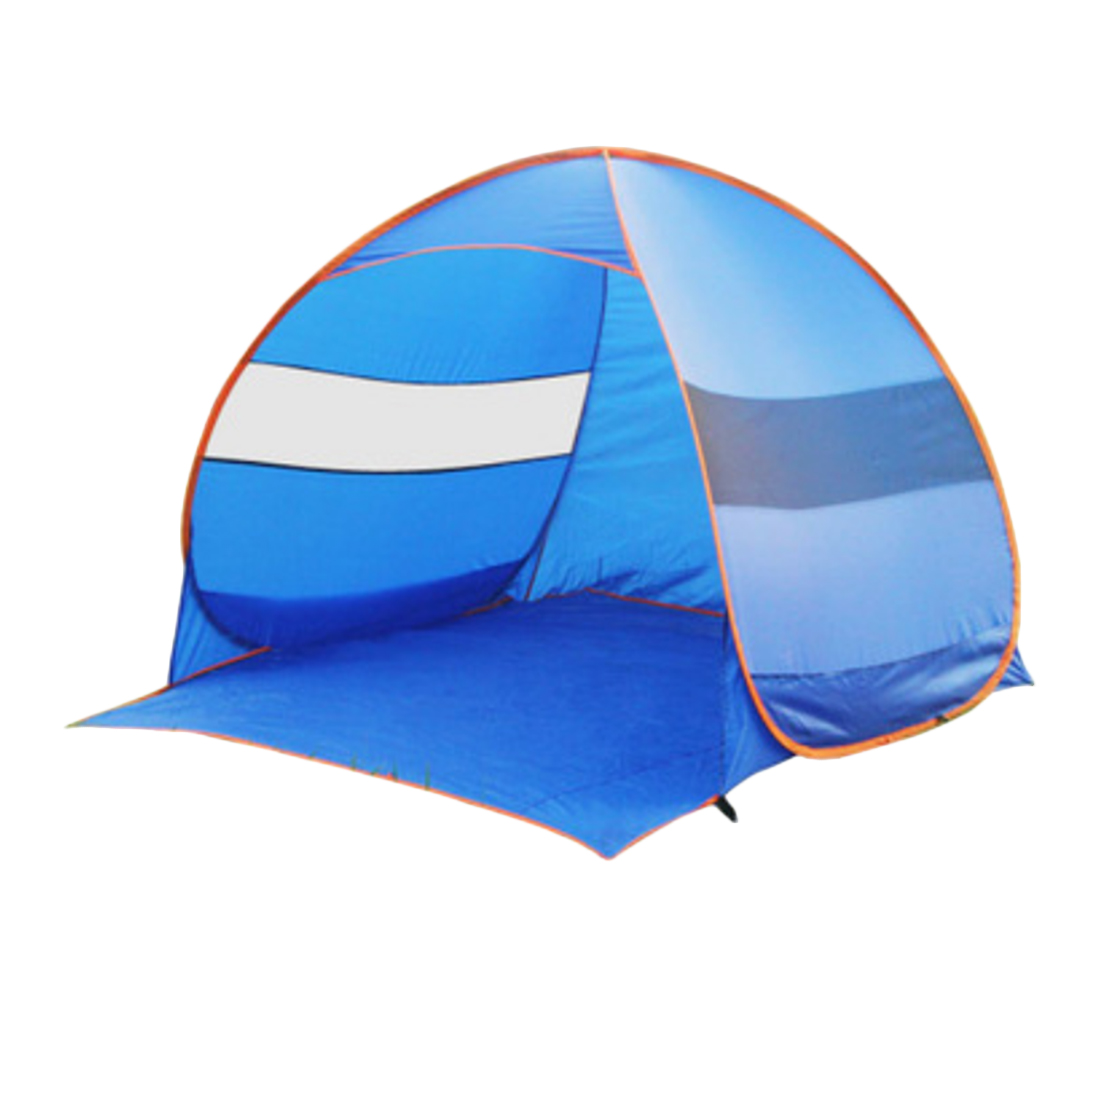 Automatic Outdoor Camping Hiking Tent 2-3 Person Portable Beach Tent Sun Shield Tent Canopy with Tent Pegs shengyuan outdoor water resistant automatic instant setup two doors 3 4 person camping tent with canopy